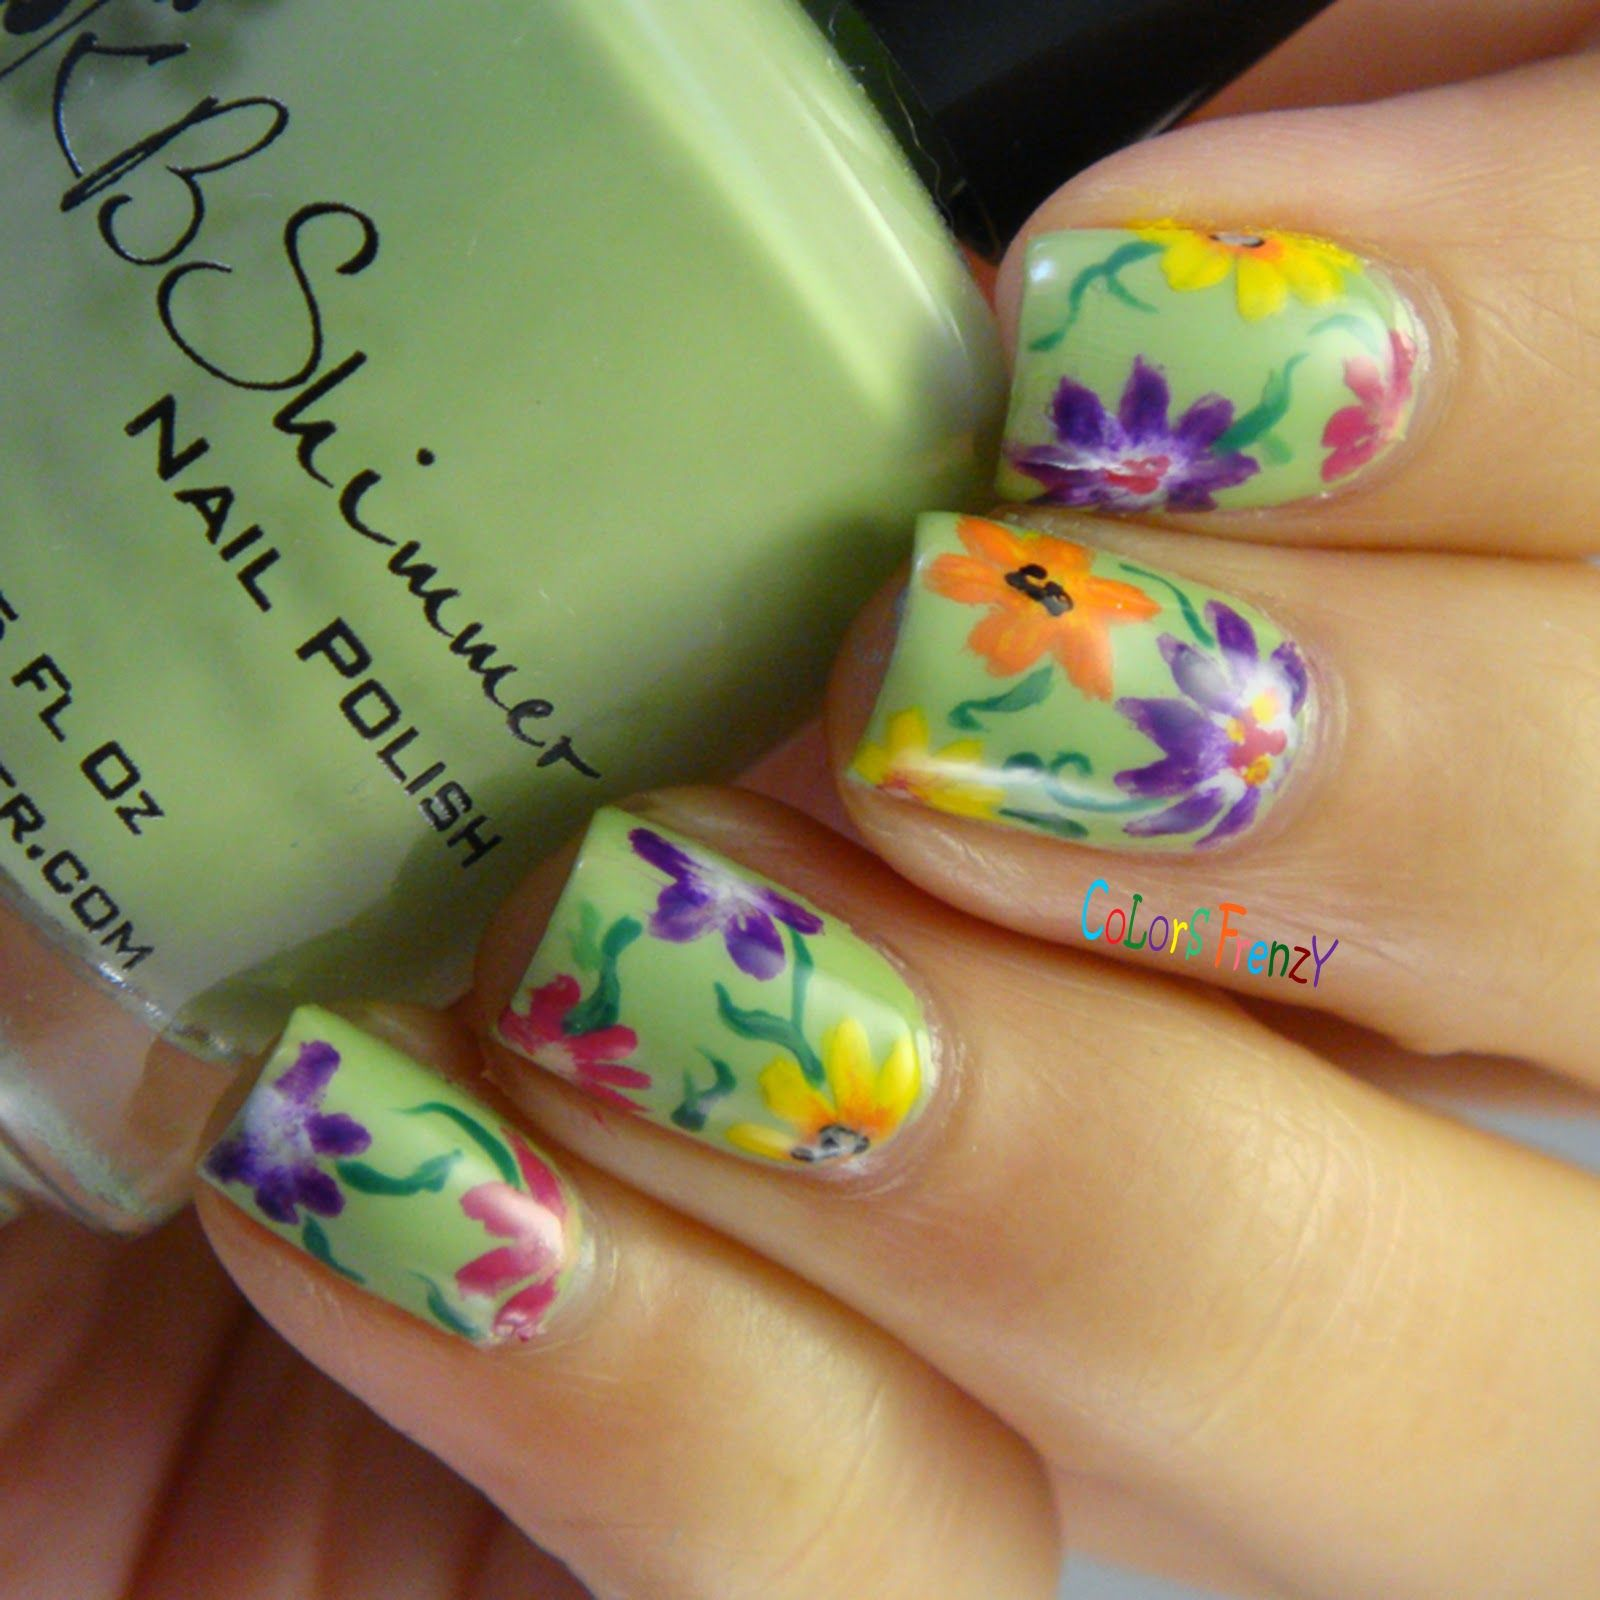 mint base coat with purple, orange, yellow and pink flower nail